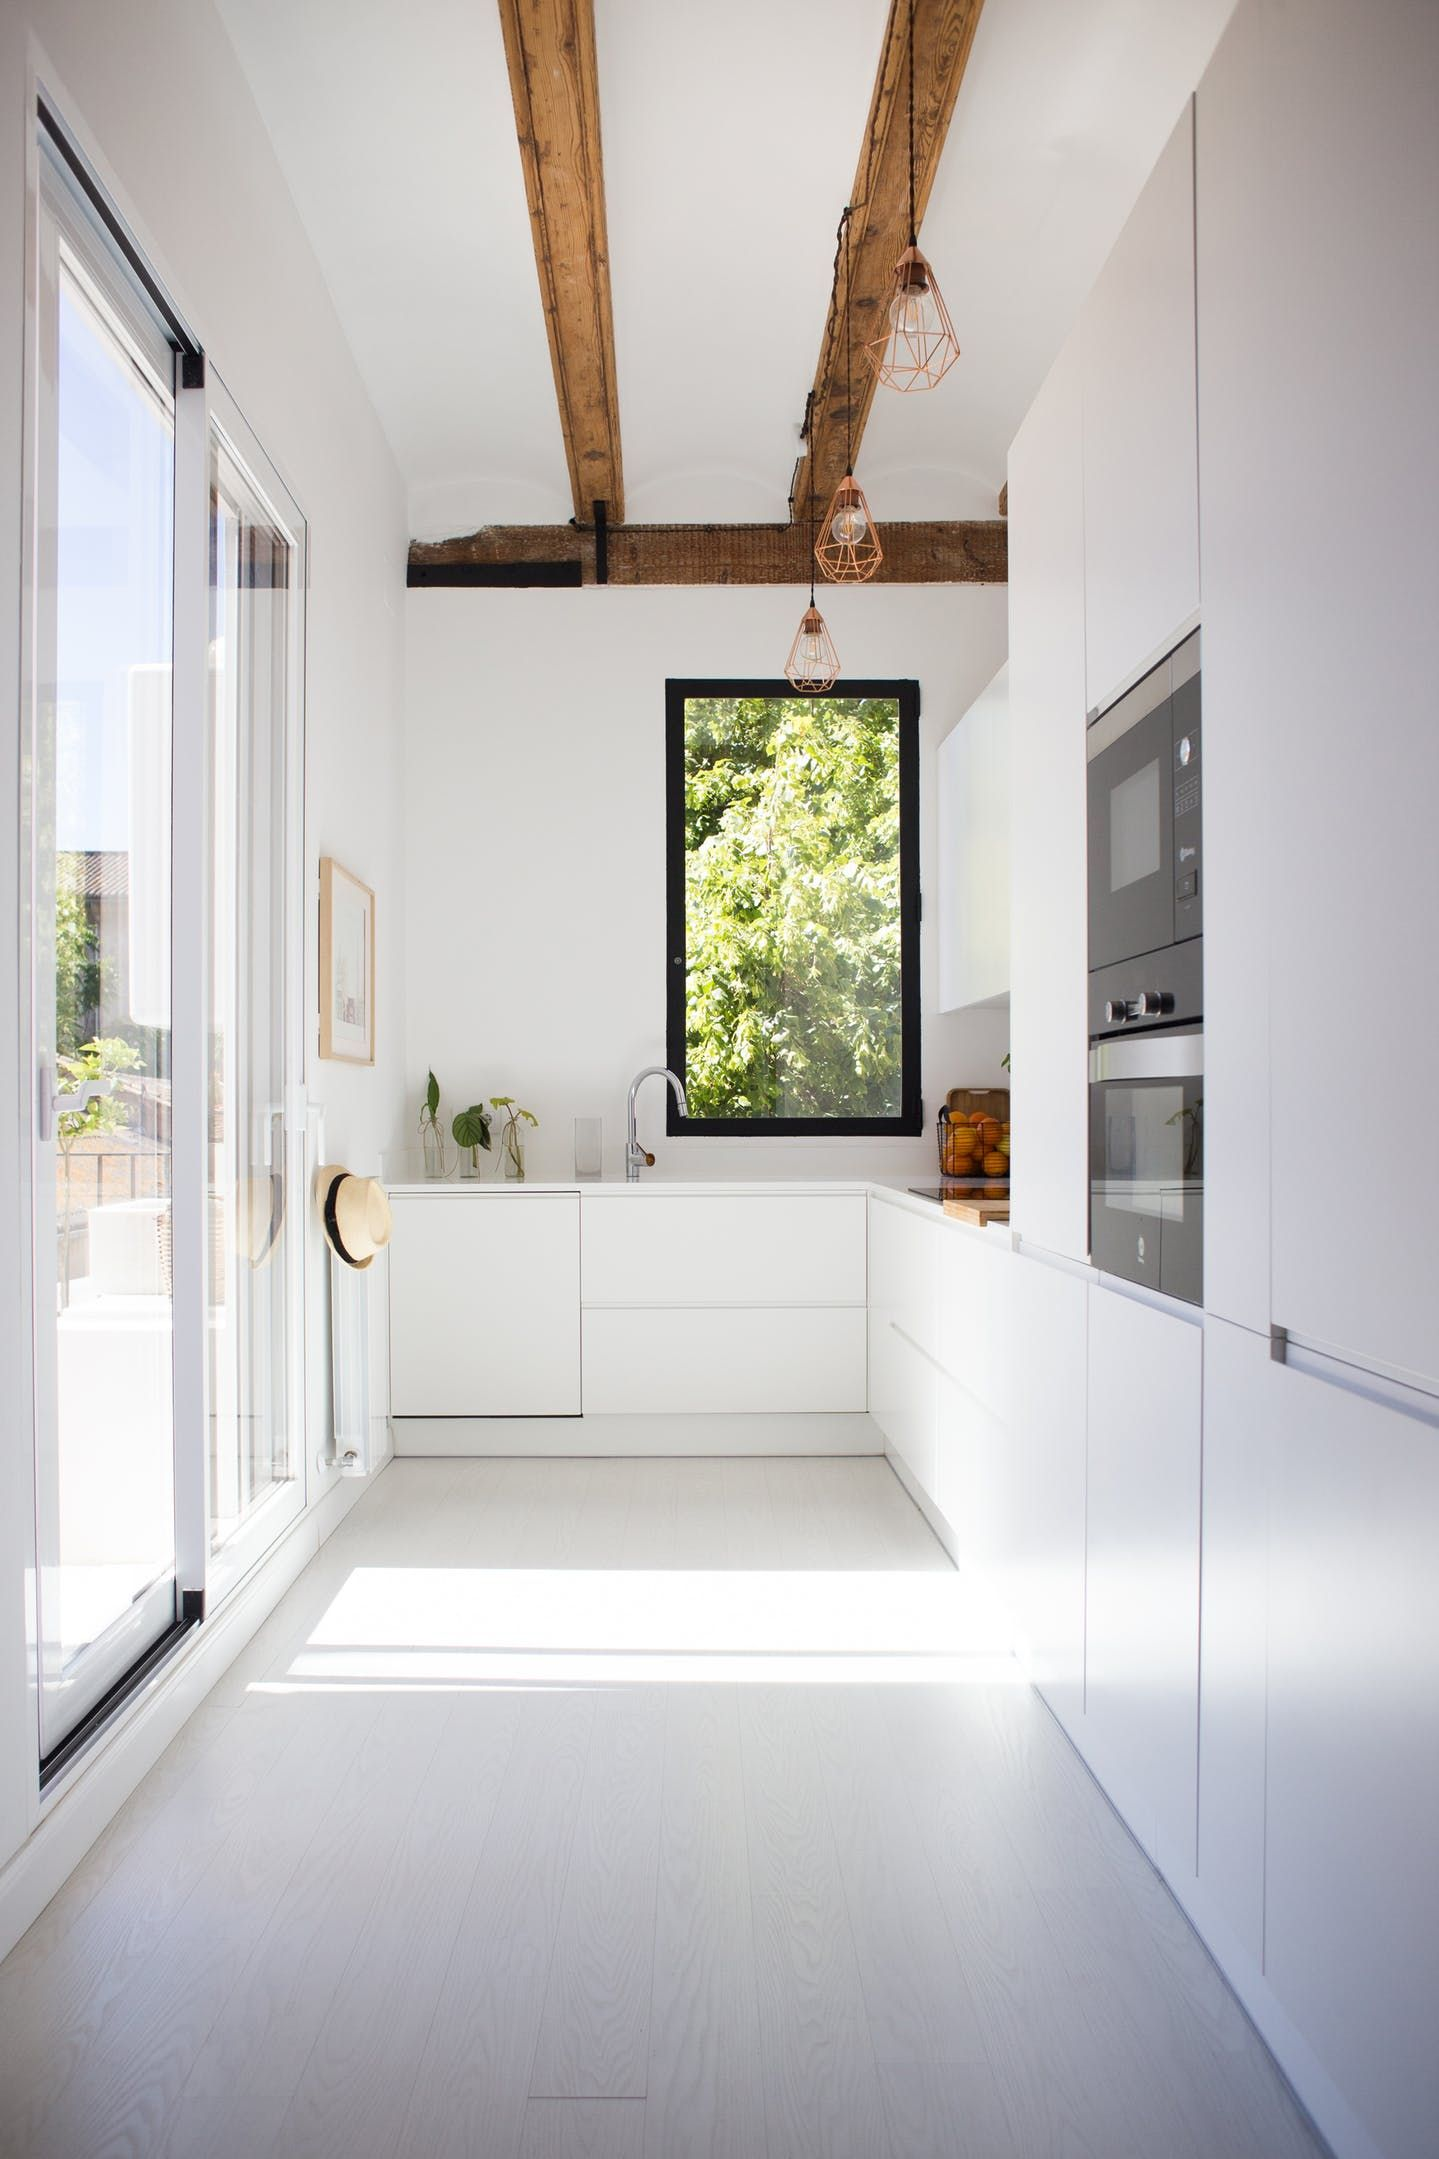 White modern kitchen with exposed beams | KITCHEN - BLOG | Pinterest ...